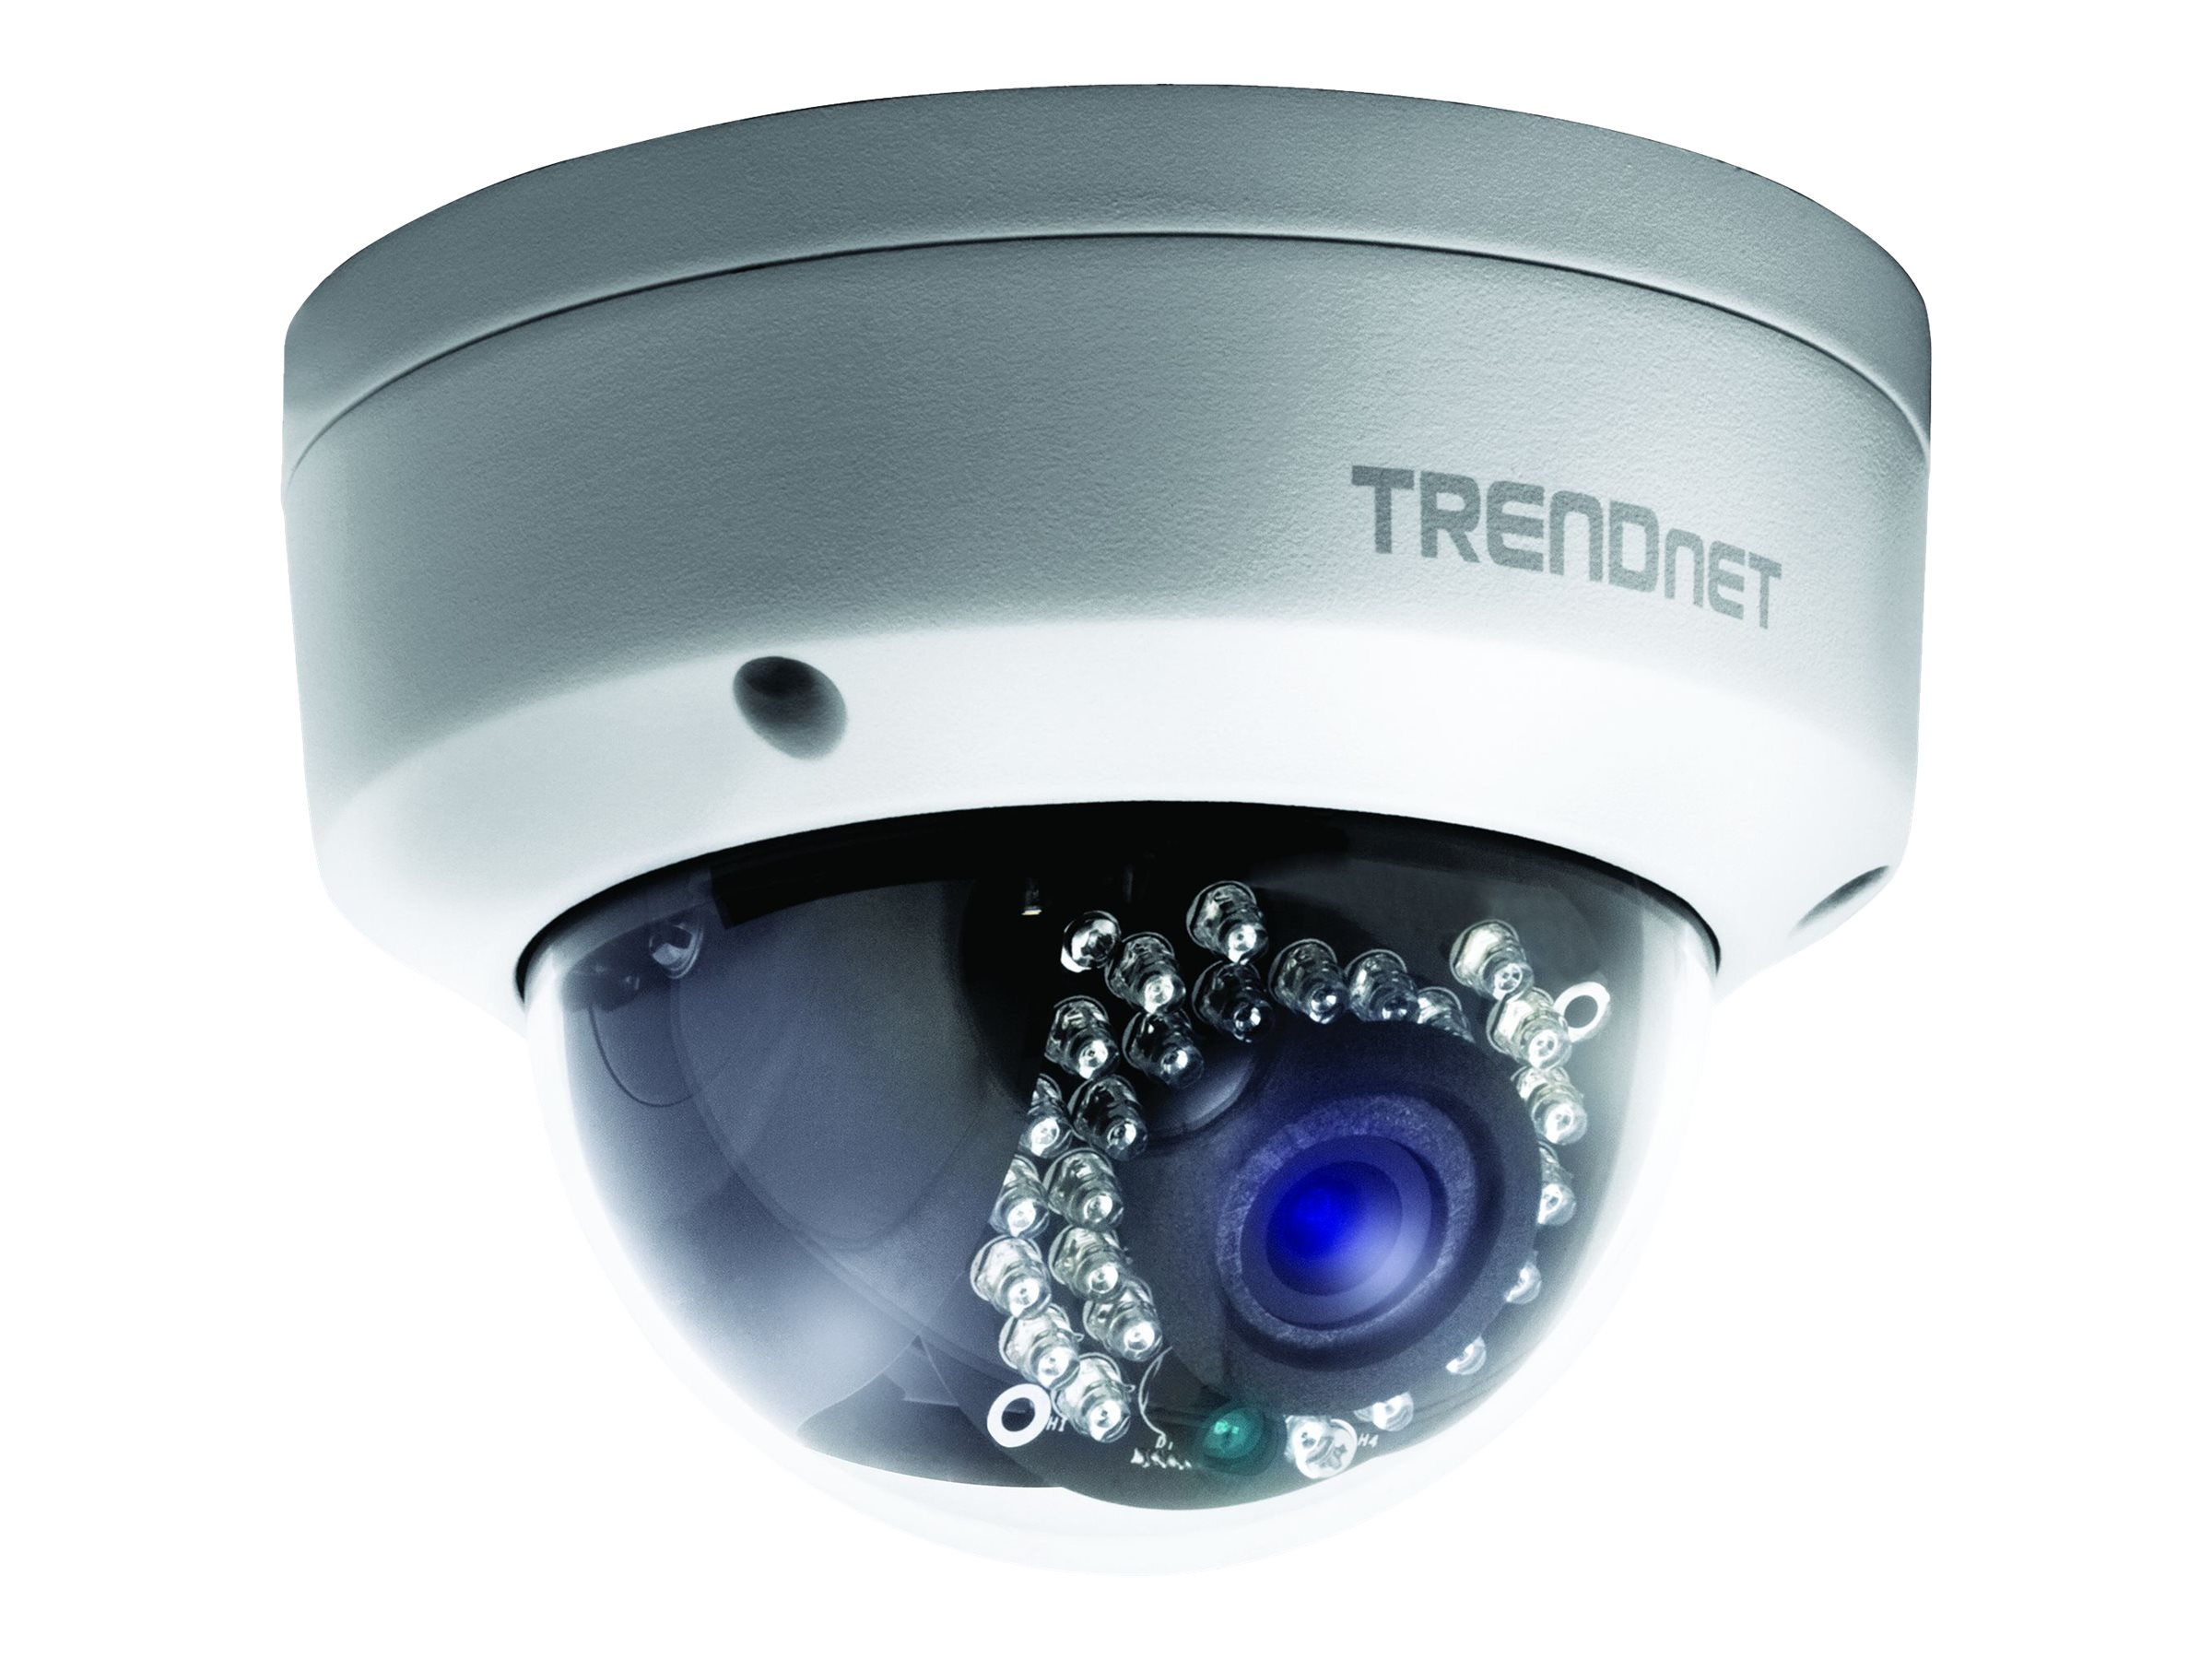 TRENDnet TV IP311PI Outdoor 3 MP PoE Dome Day/Night Network Camera - network surveillance camera